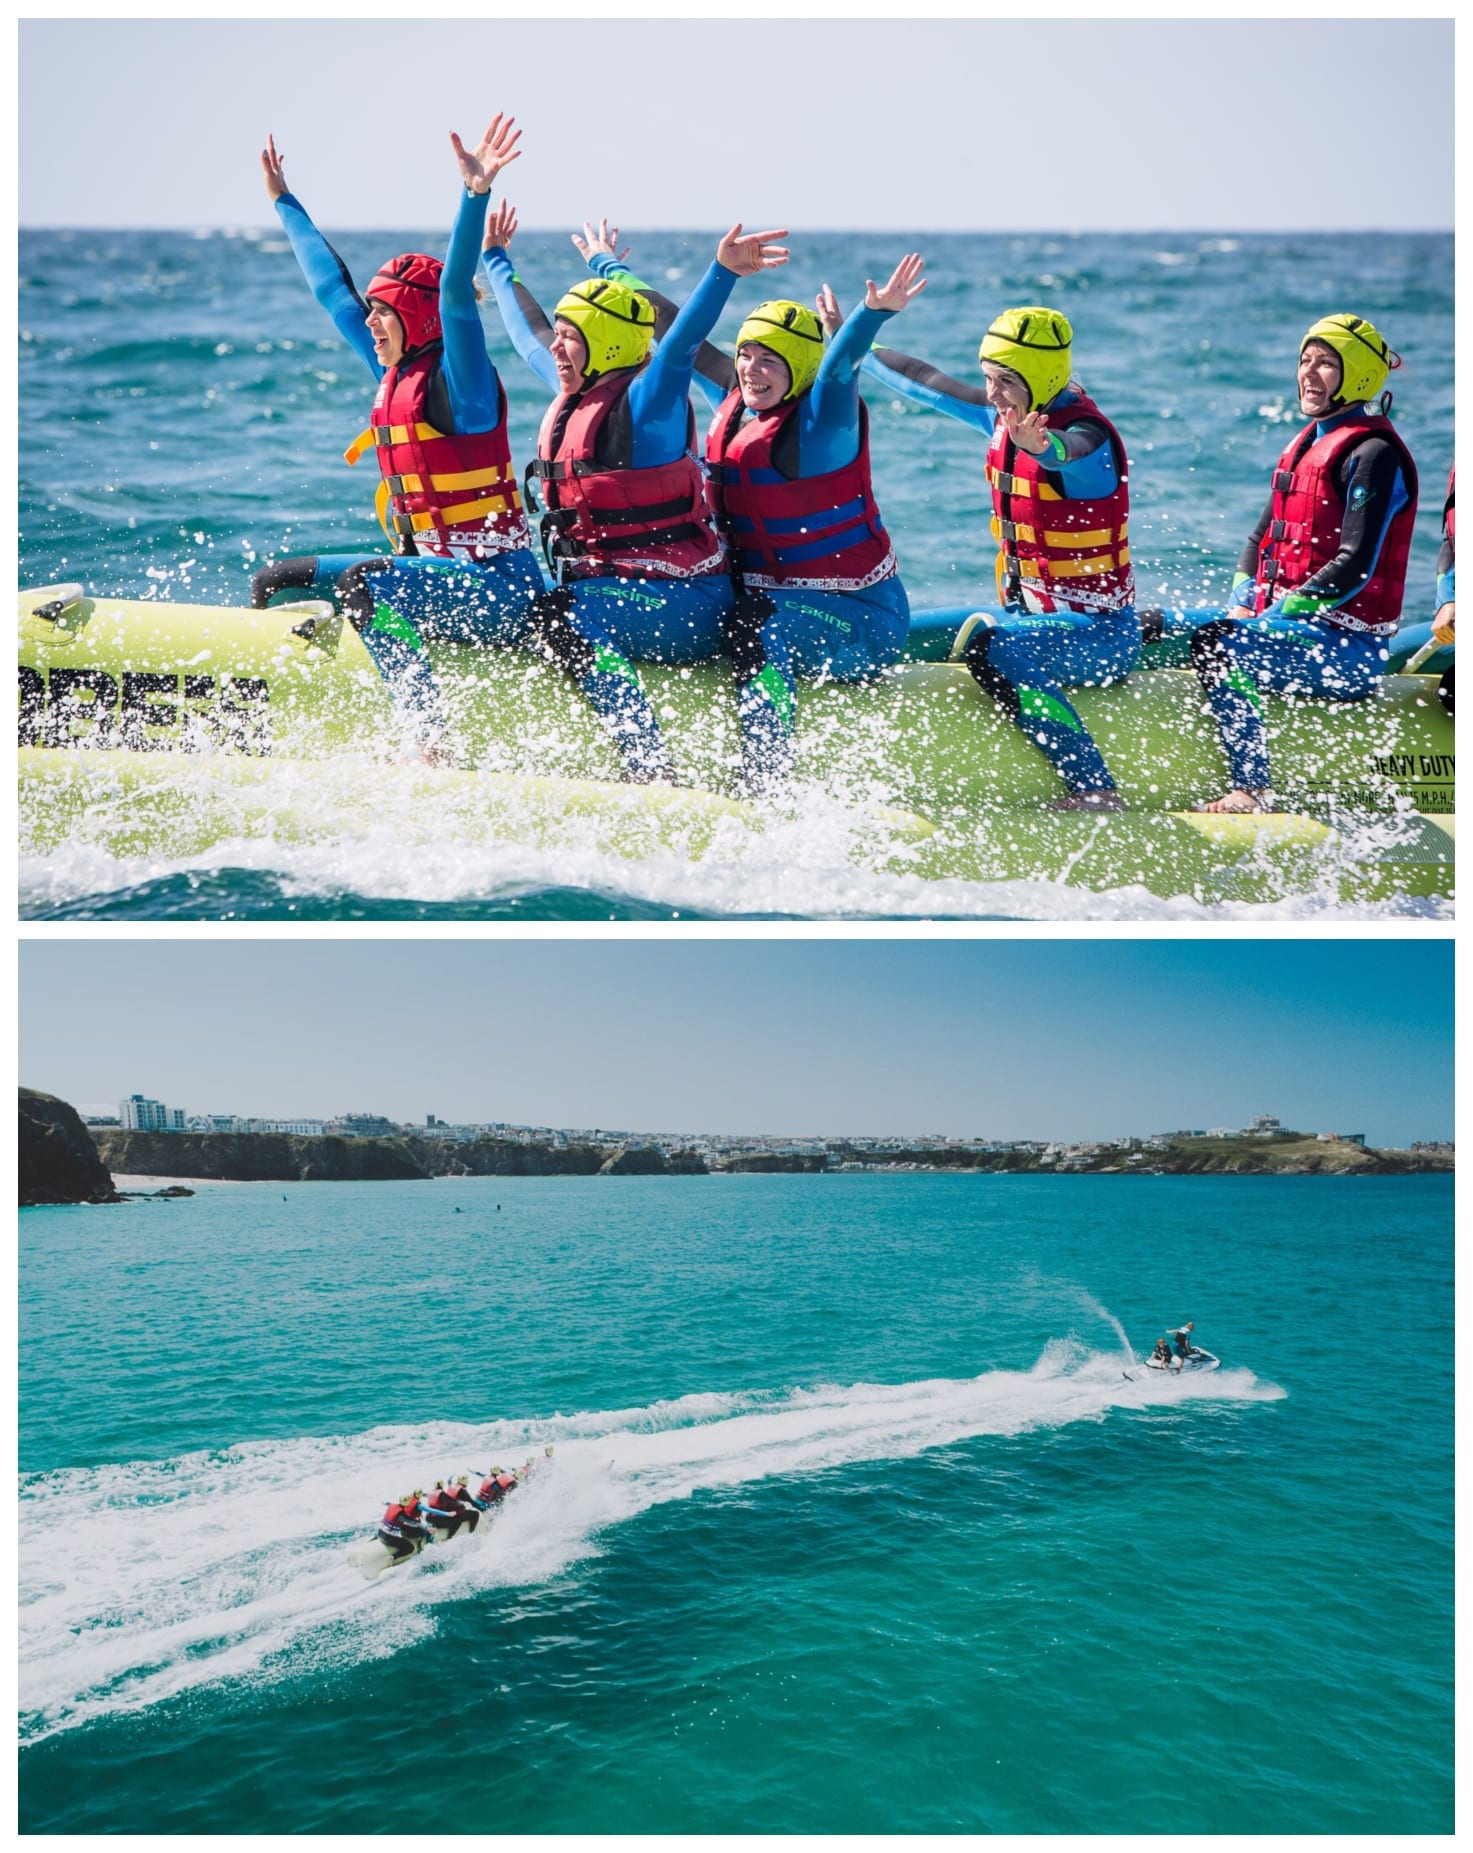 Banana Boat Rides in Cornwall